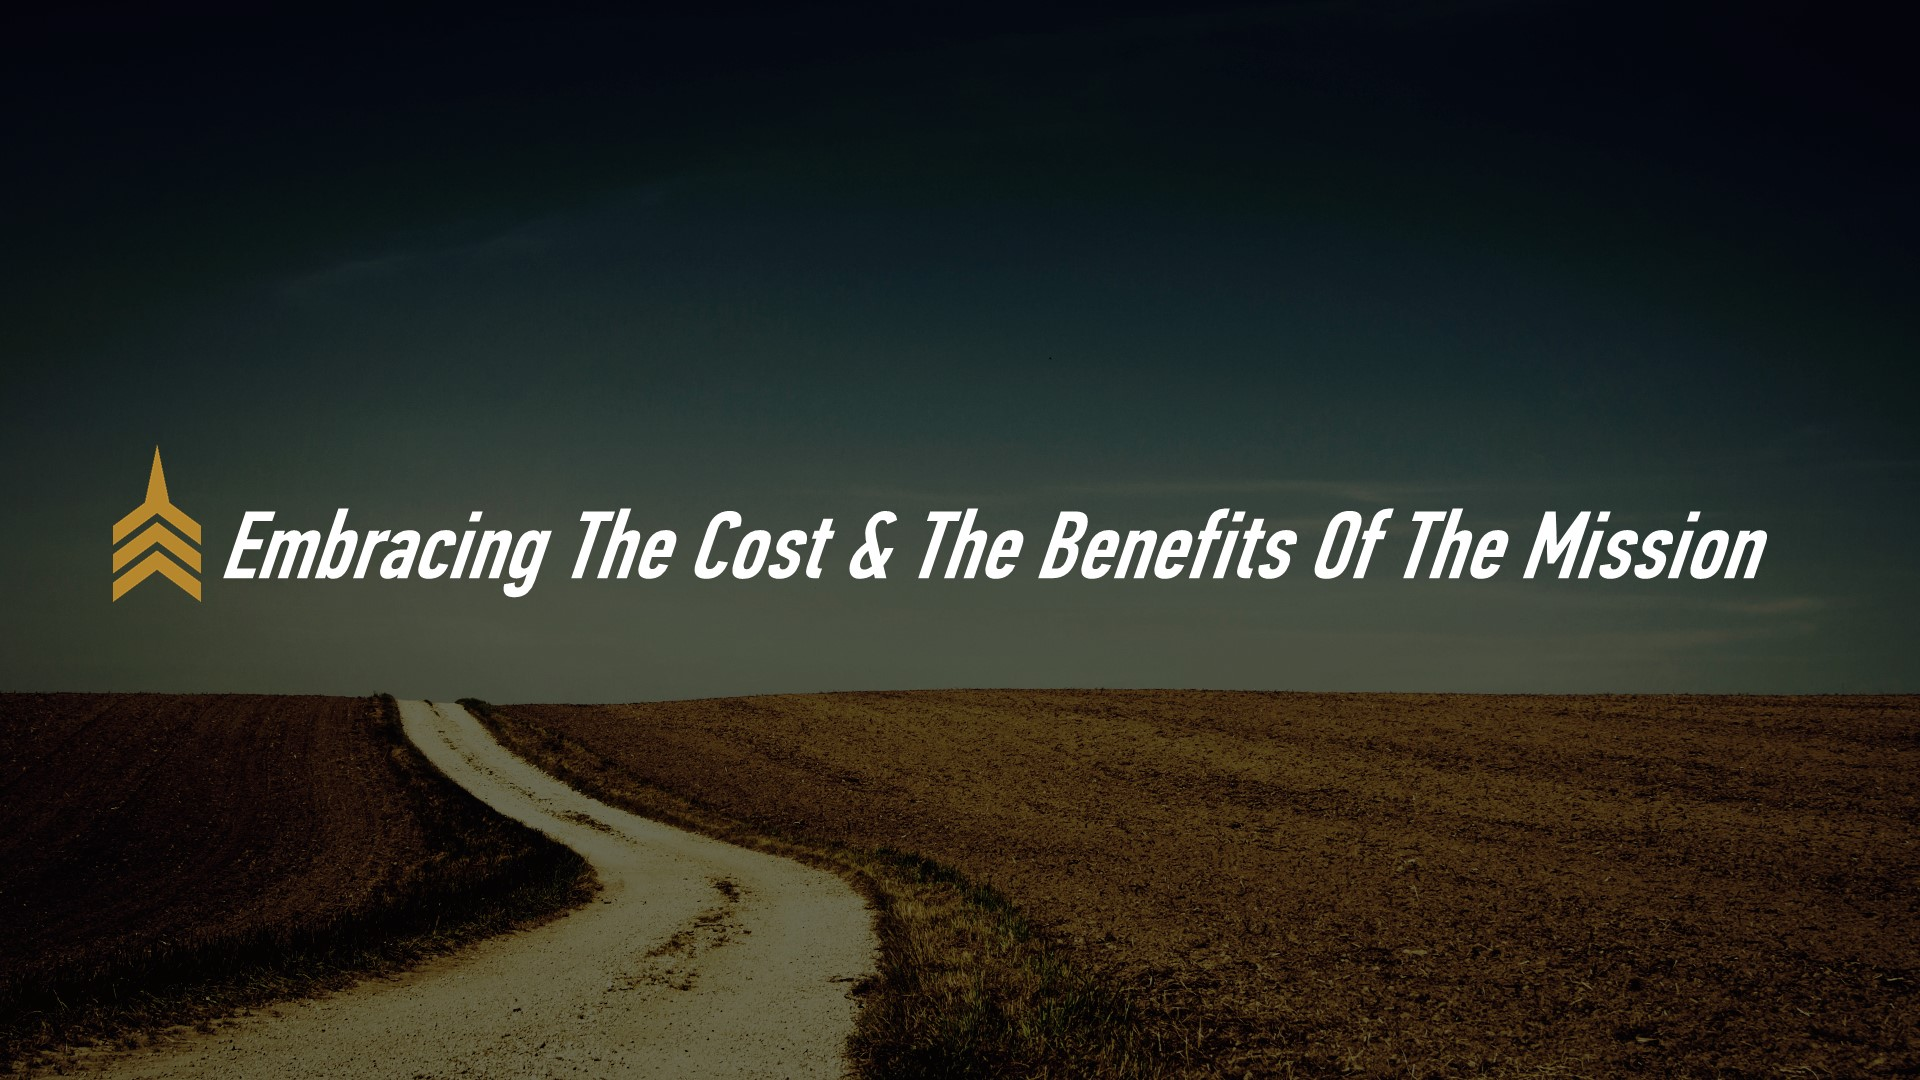 20181125 Embracing The Cost & The Benefits Of The Mission.JPG